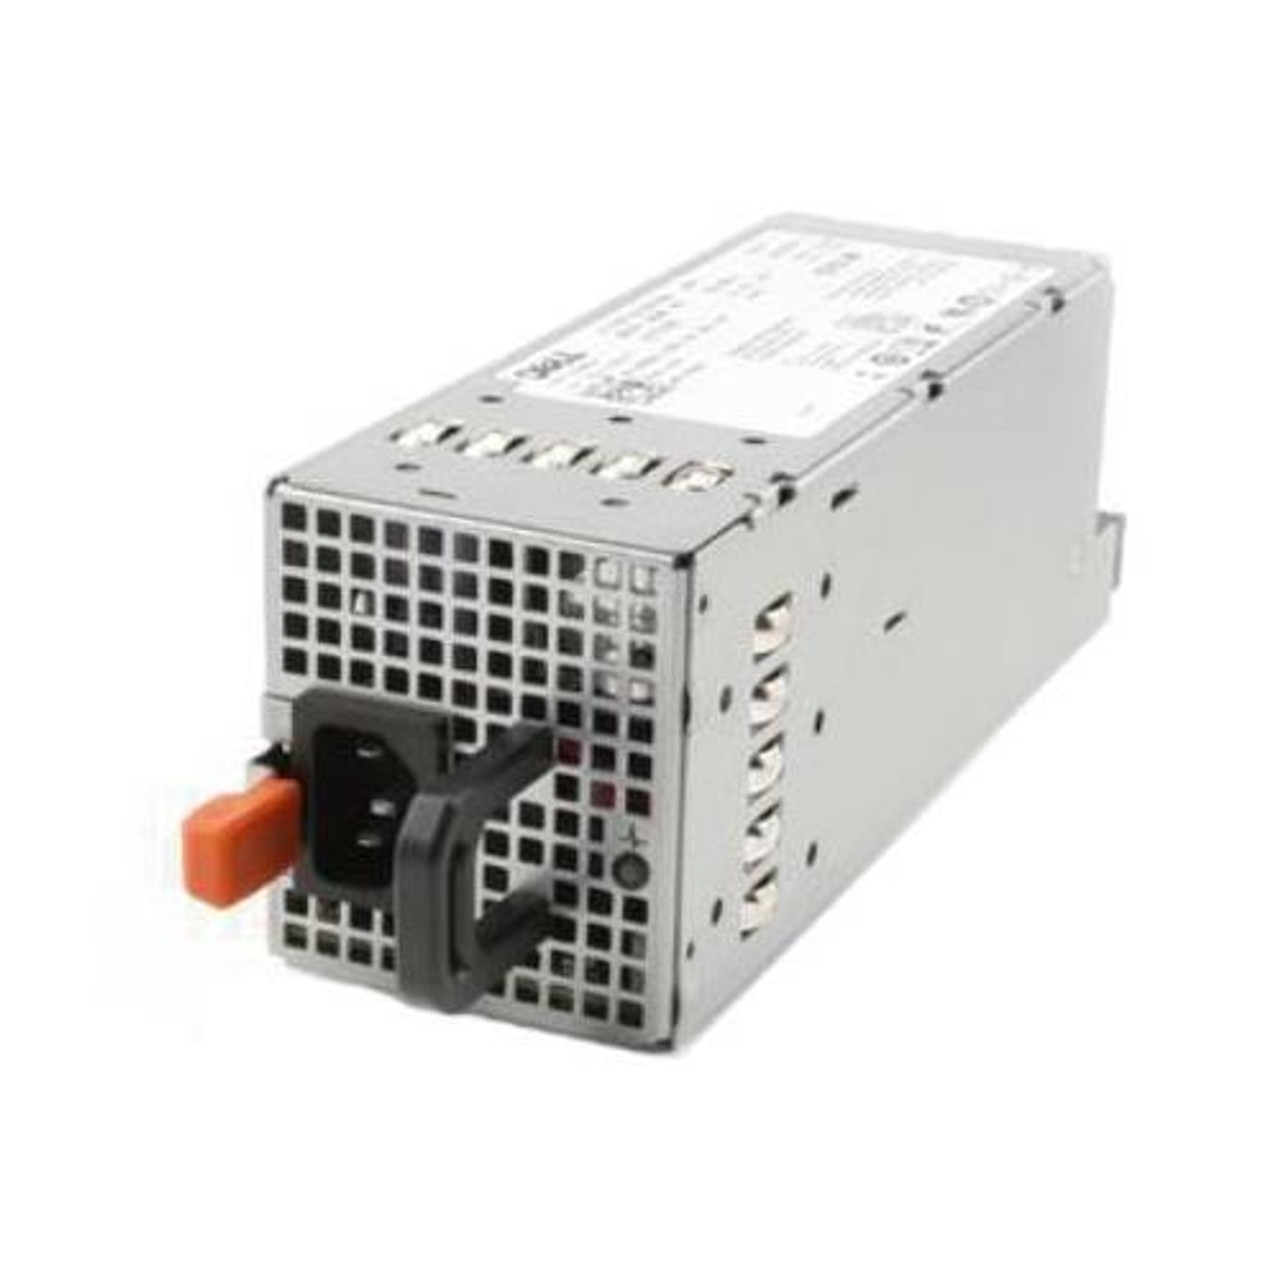 OVPR1M Dell 570-Watts Power Supply for PowerEdge R710 T610